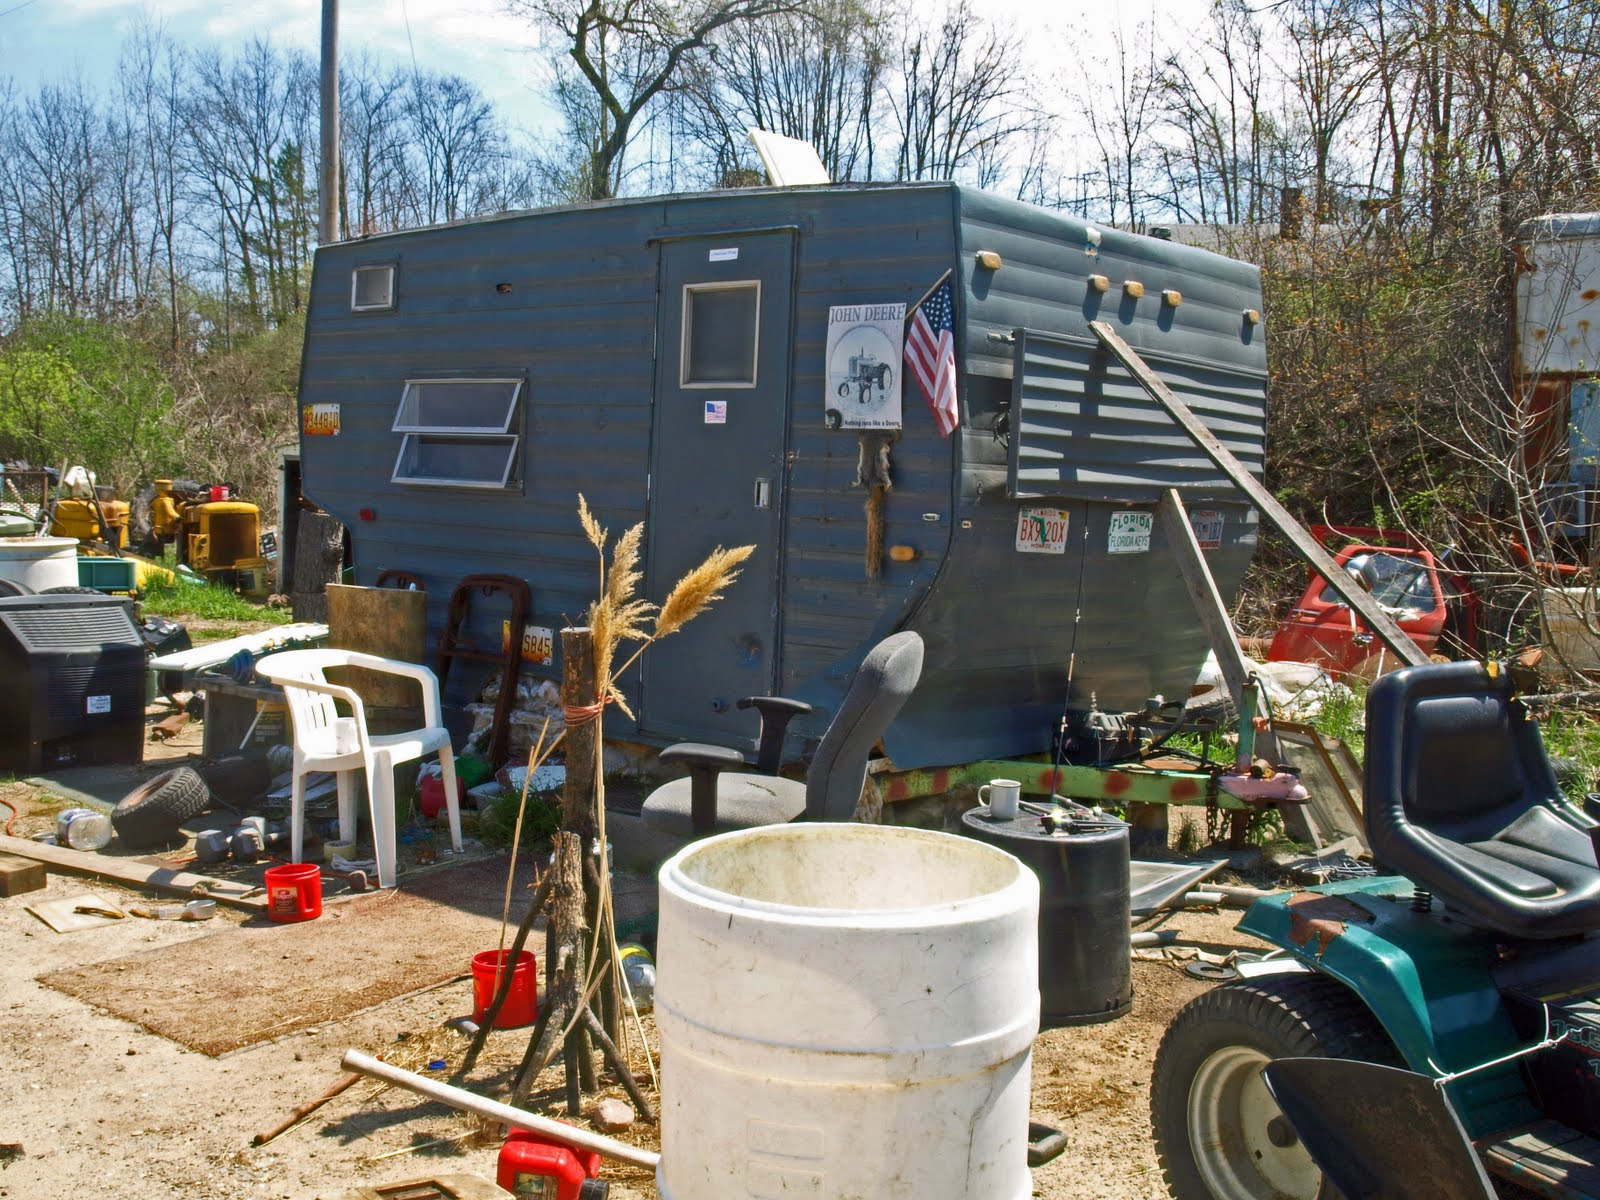 Used RV Parts amp RV Salvage Yards  Parts for Motor Homes